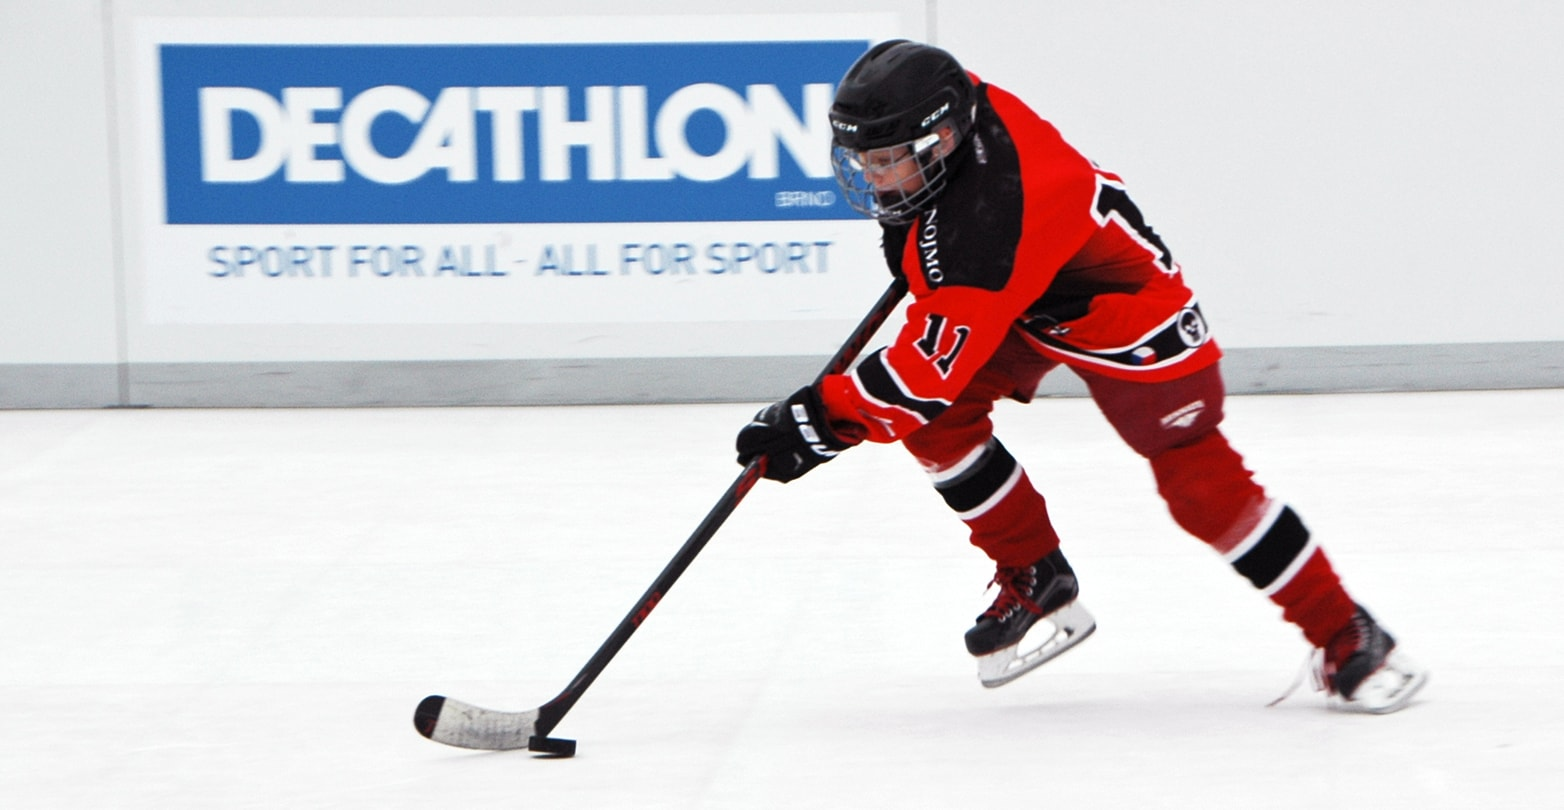 Ice hockey player gliding on artificial ice rink